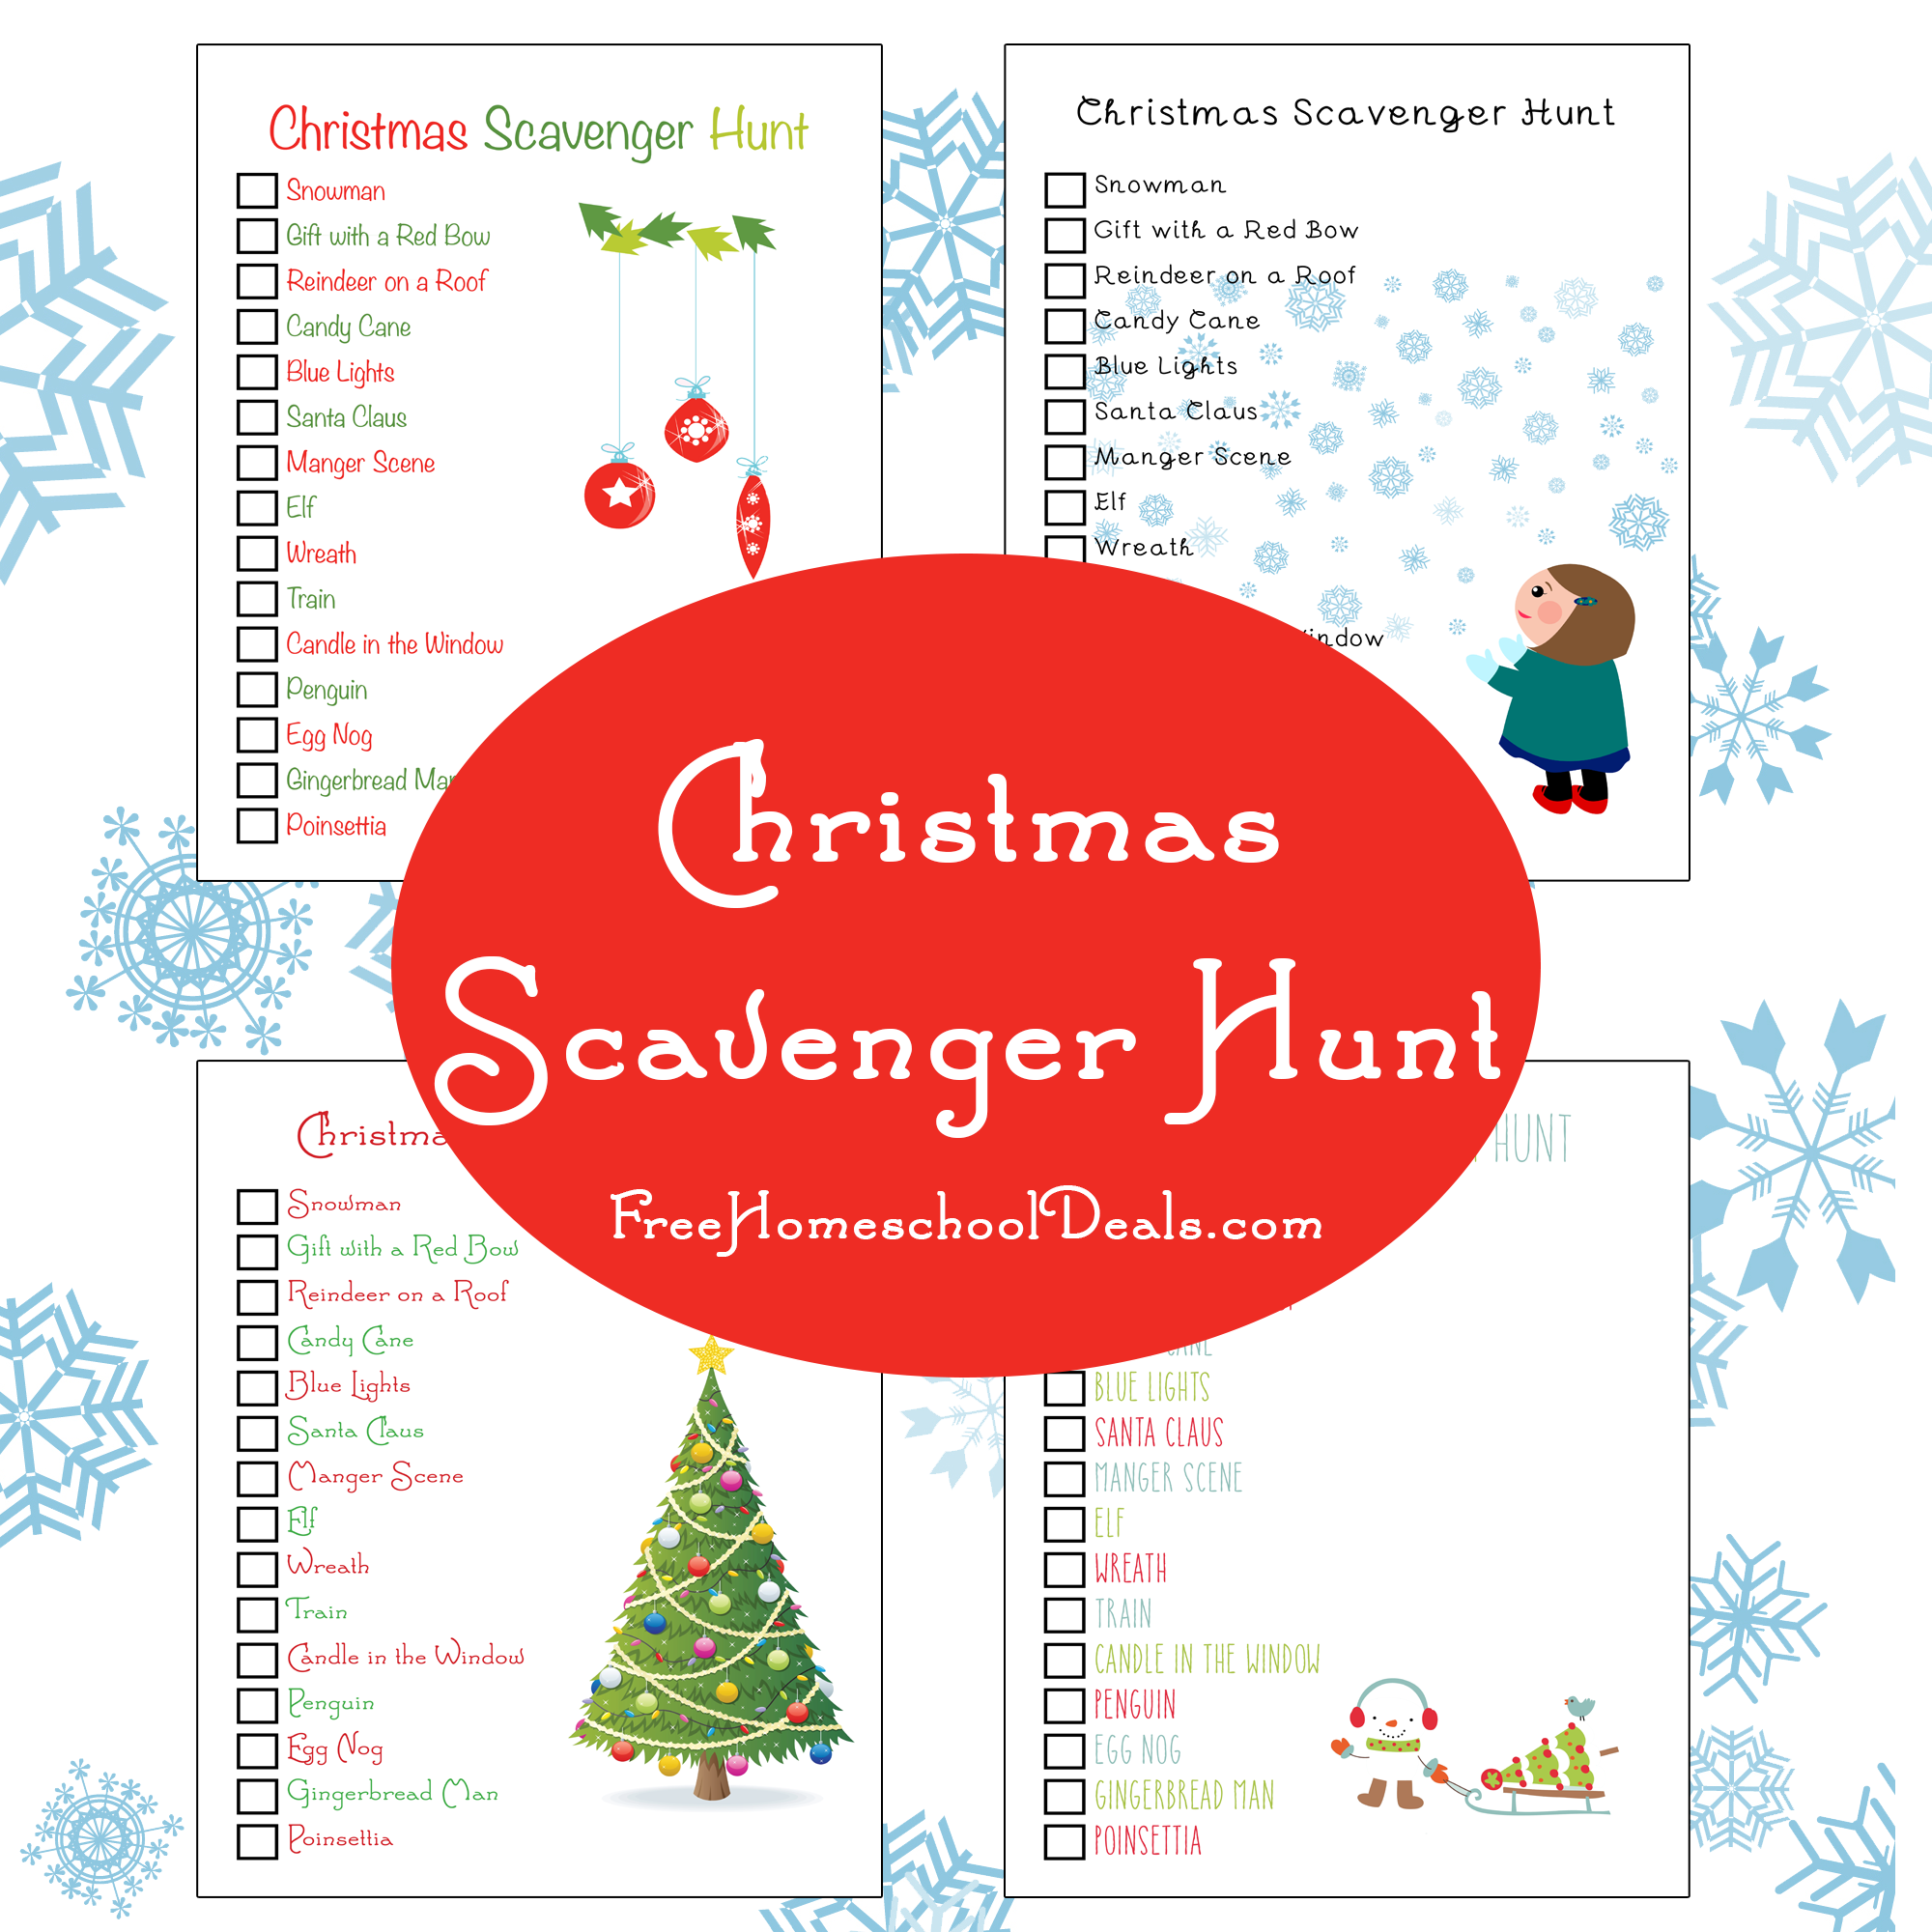 free printable christmas scavenger hunt free homeschool deals. Black Bedroom Furniture Sets. Home Design Ideas